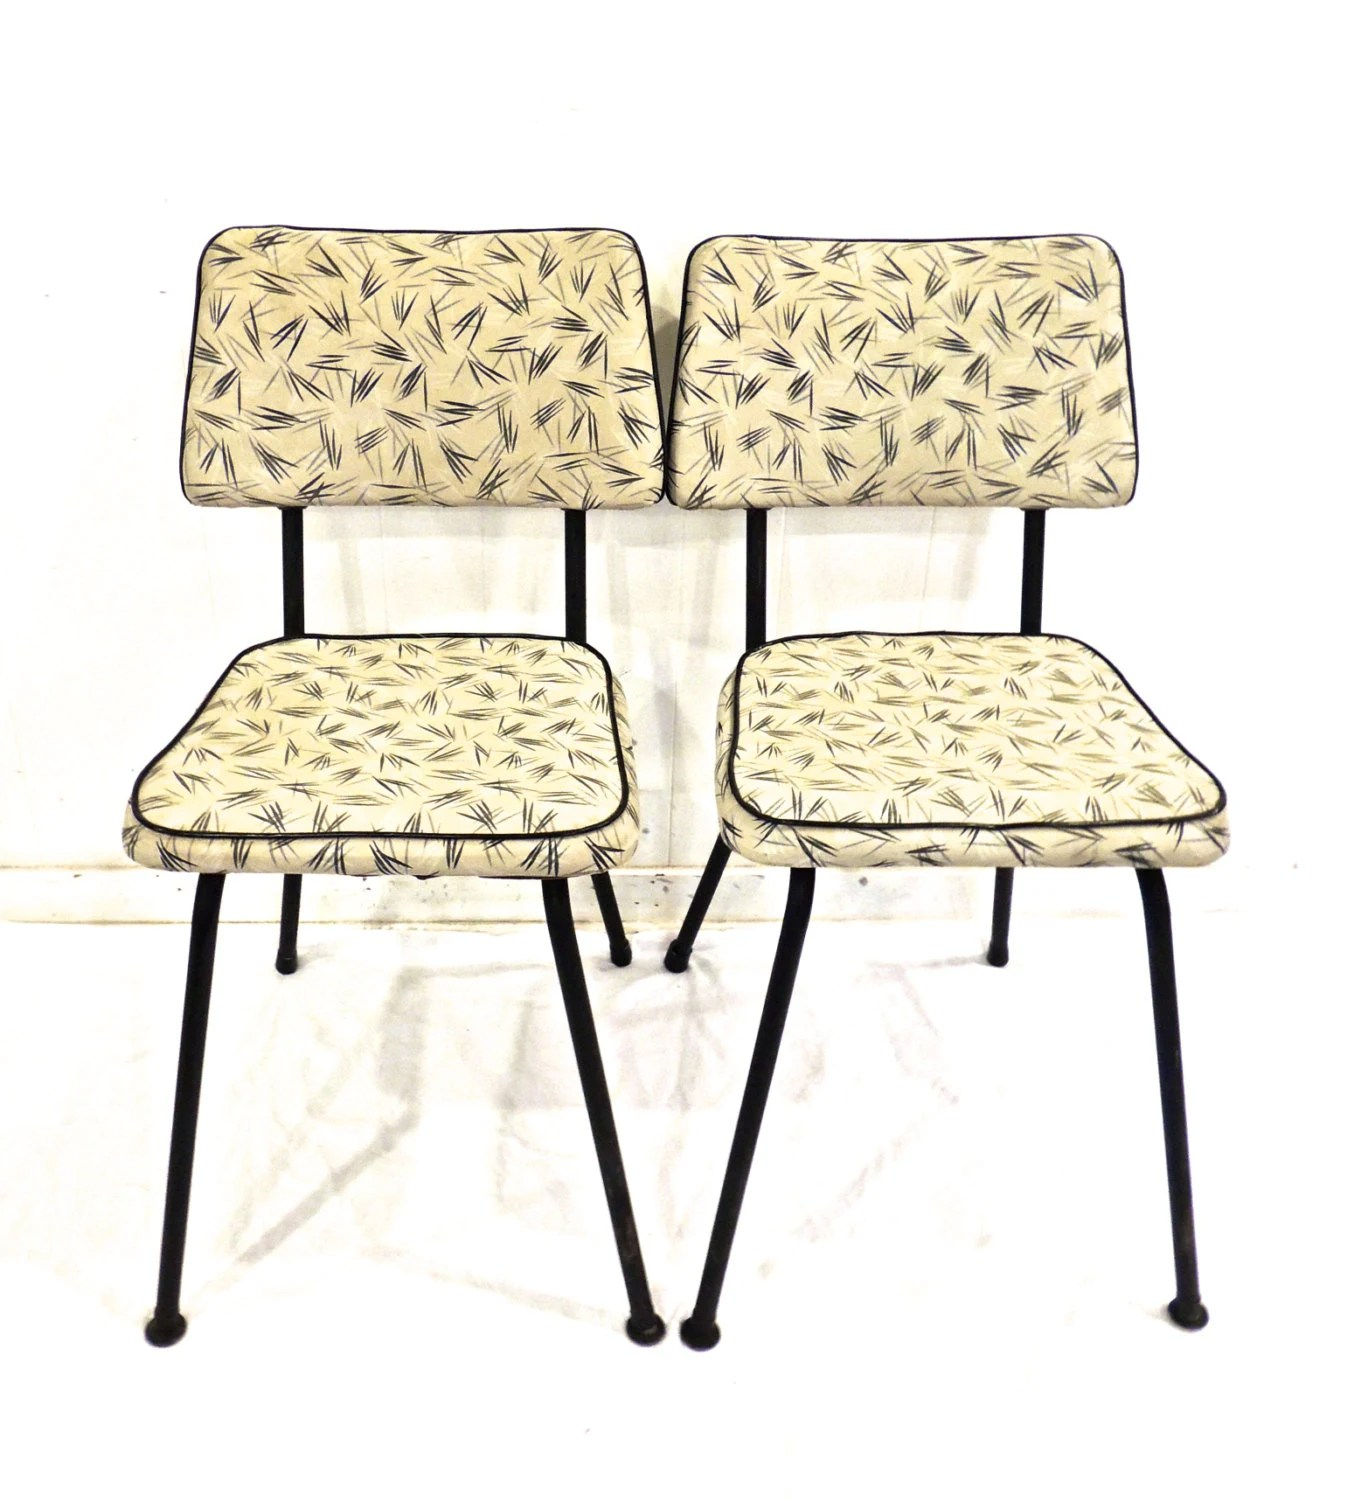 Retro Kitchen Chairs Vintage Kitchen Chairs 1950s 60s Mesco Mid Century Atomic